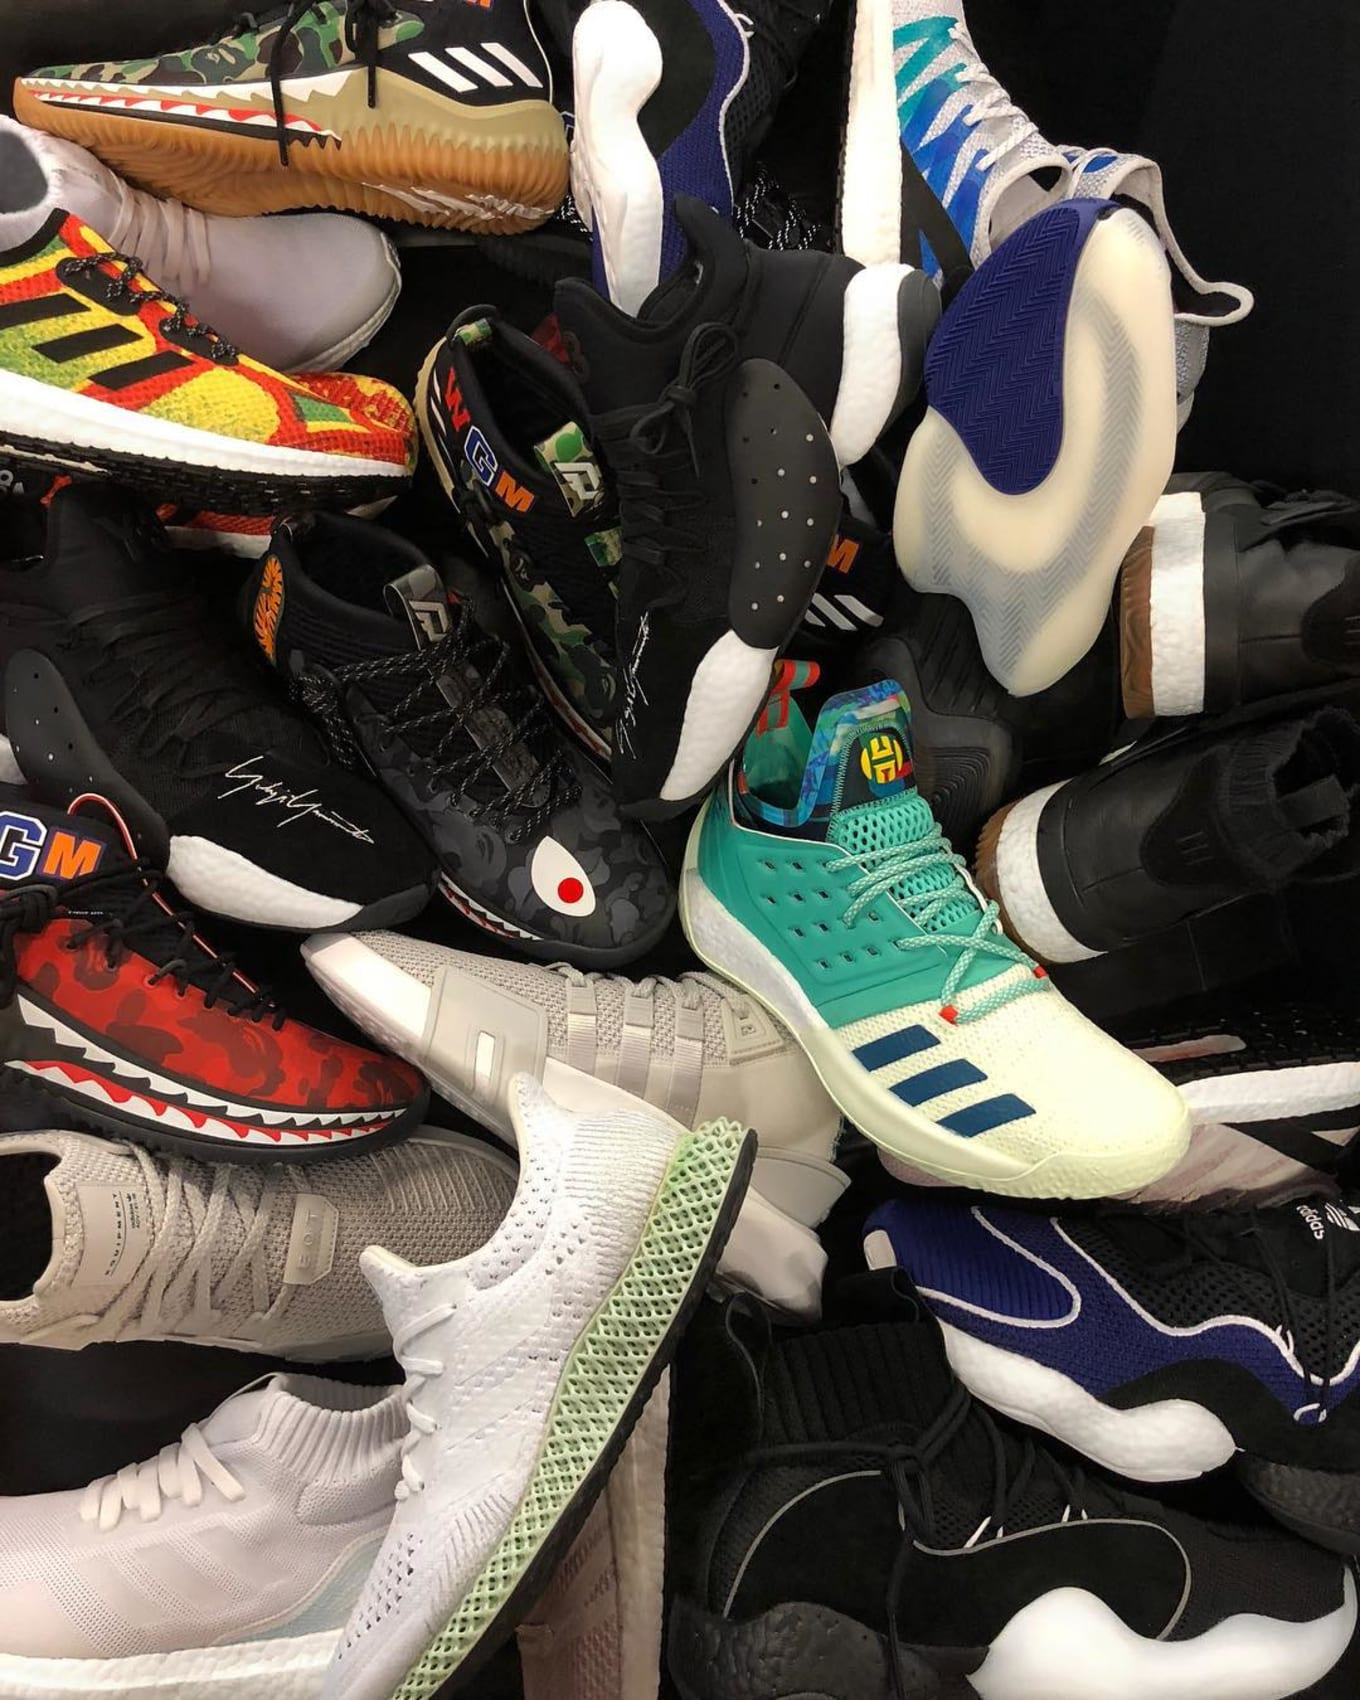 Star 747 ReleasesSole All Adidas Collector Sneaker xCWdreBo